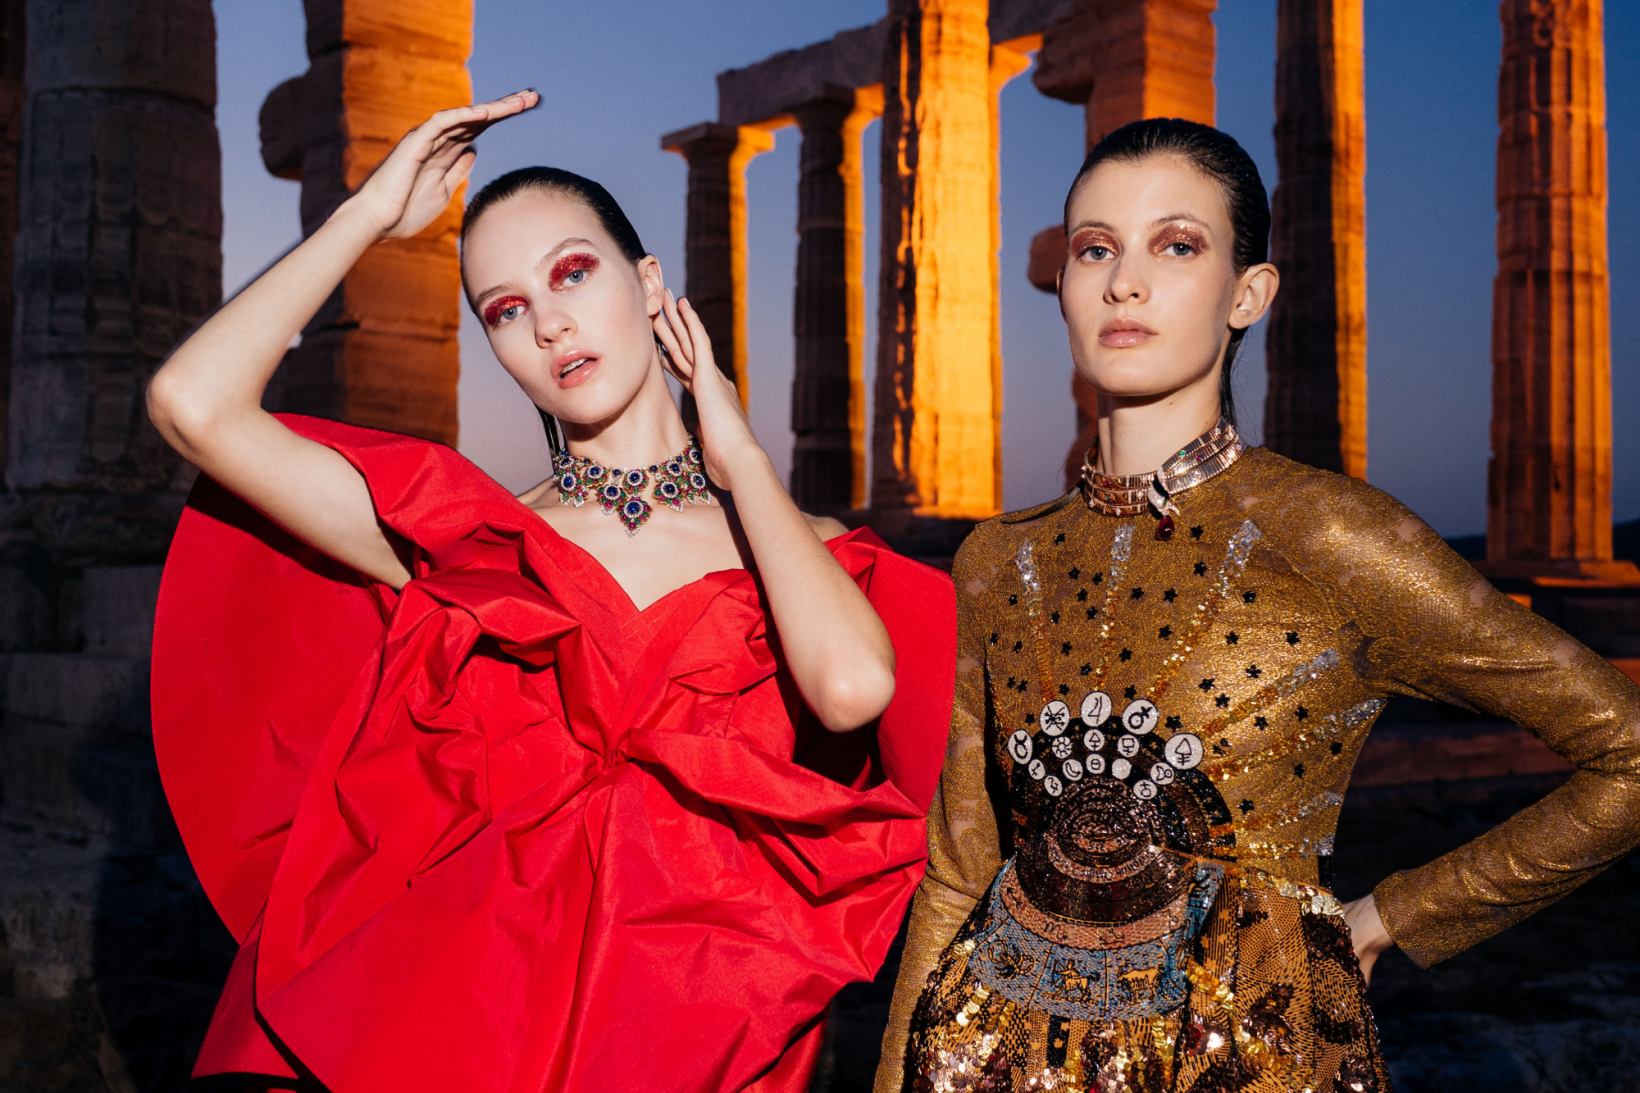 What will be the future for the fashion industry?